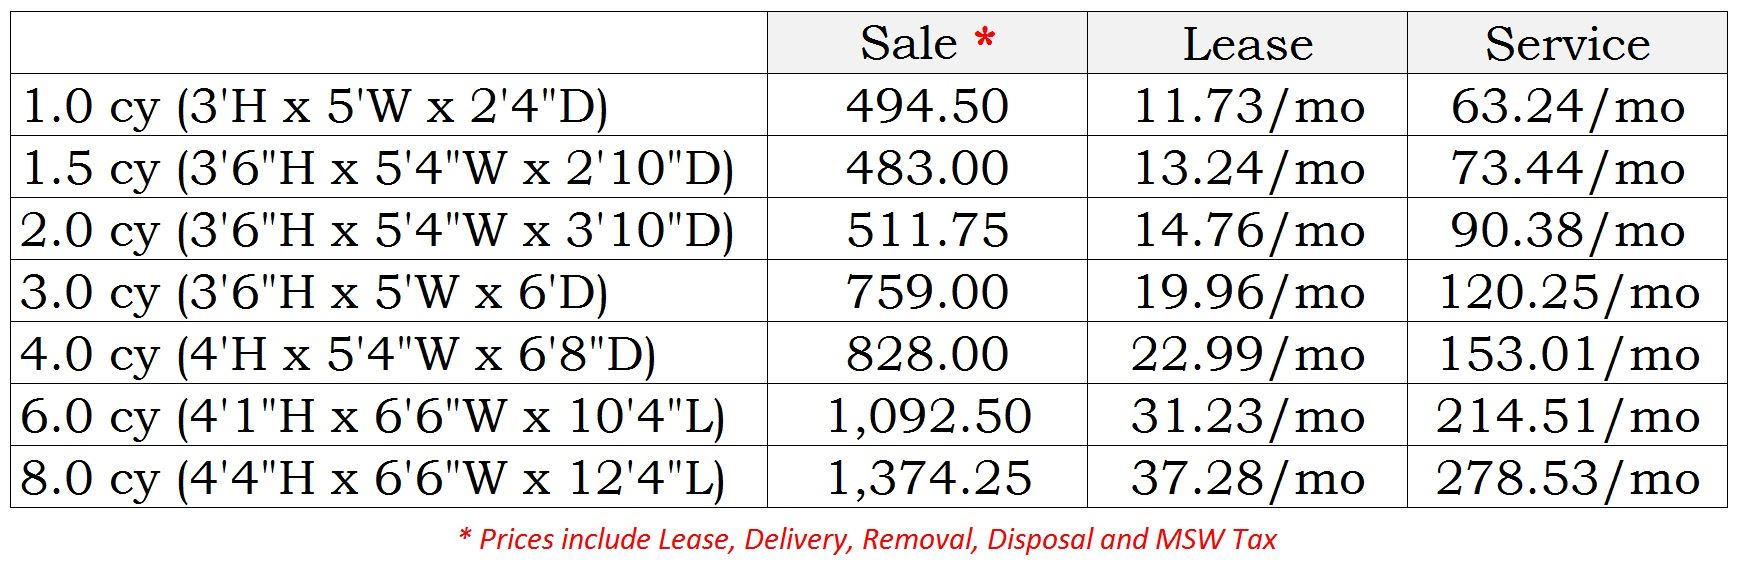 Comparison table depicting dumpster sizes and relative sale, service, and rental costs.